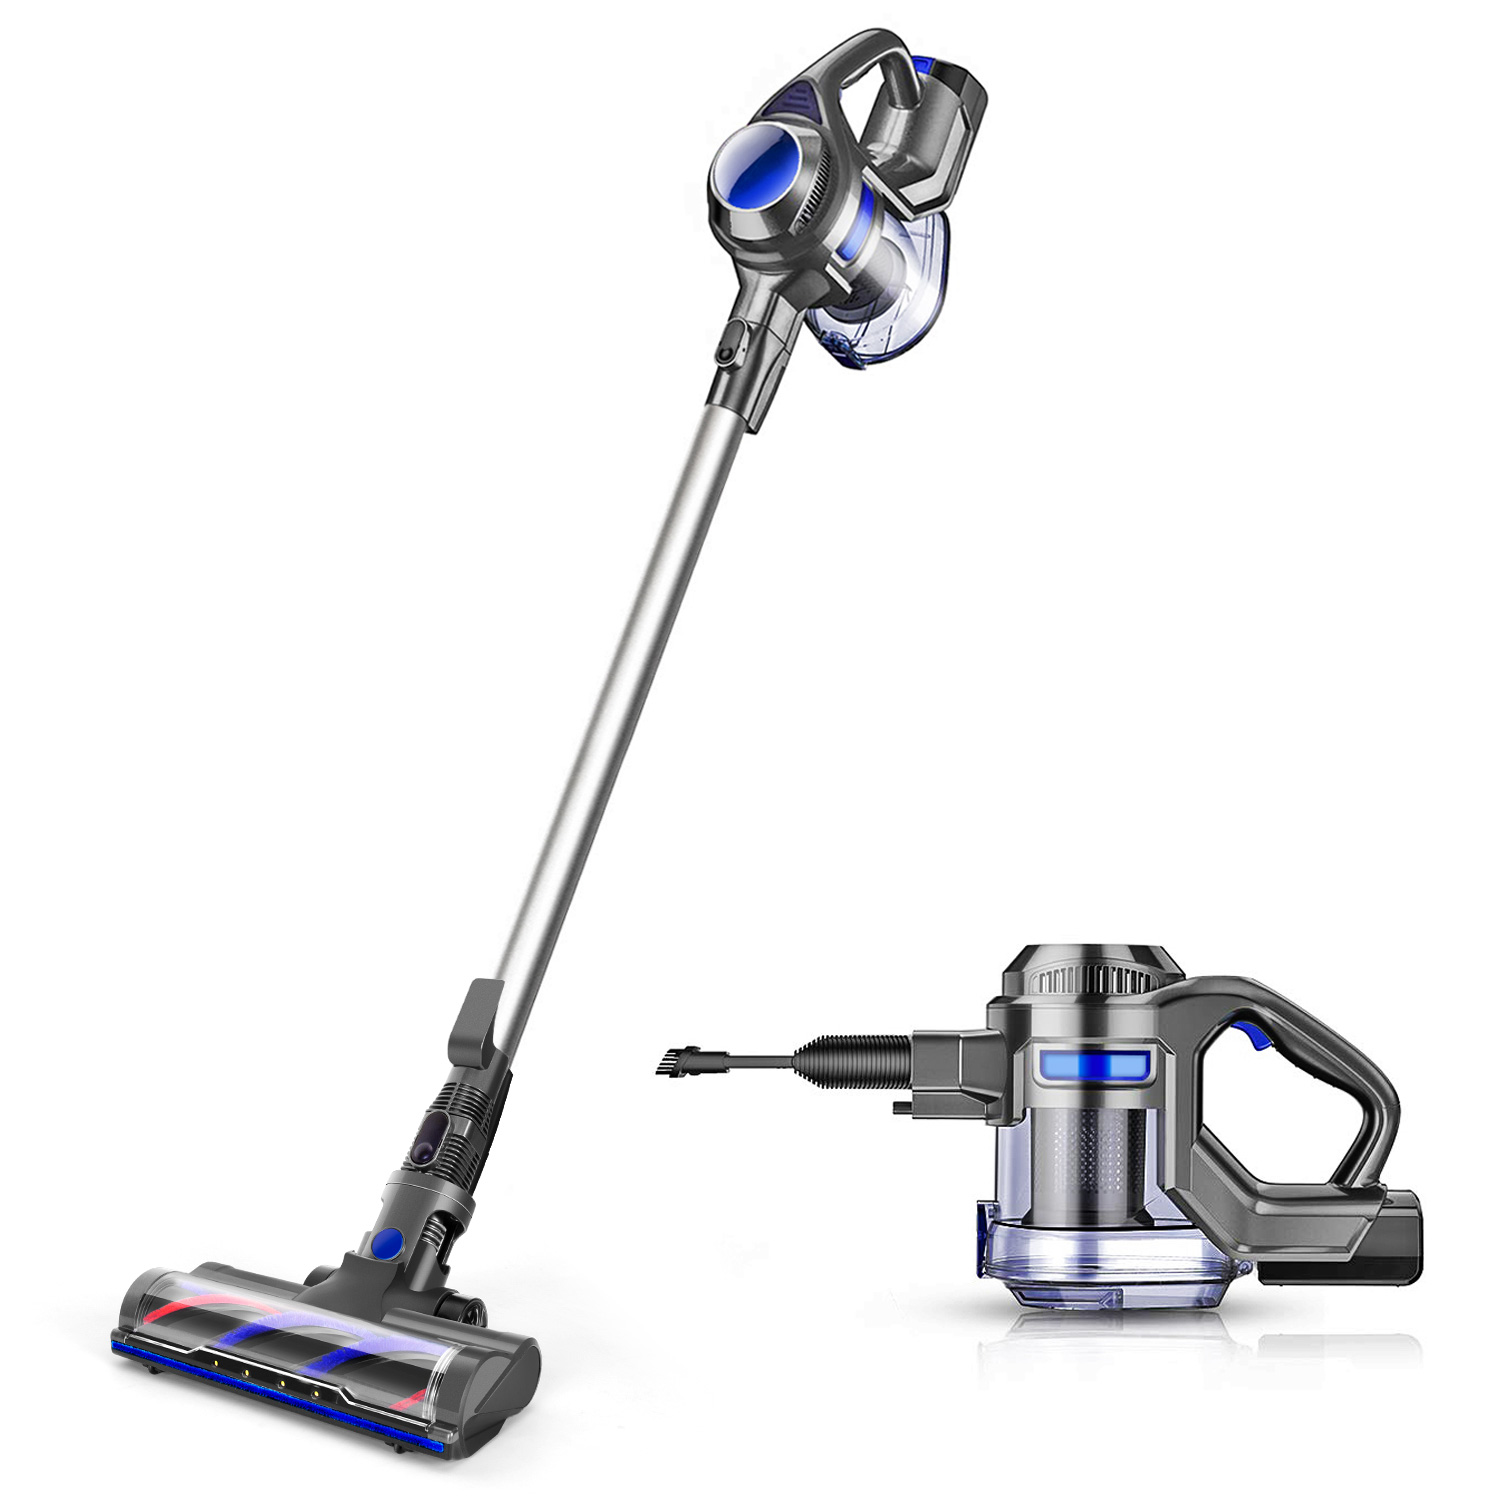 MOOSOO Cordless Vacuum 4-in-1 Lightweight Stick Vacuum Cleaner, XL-618A